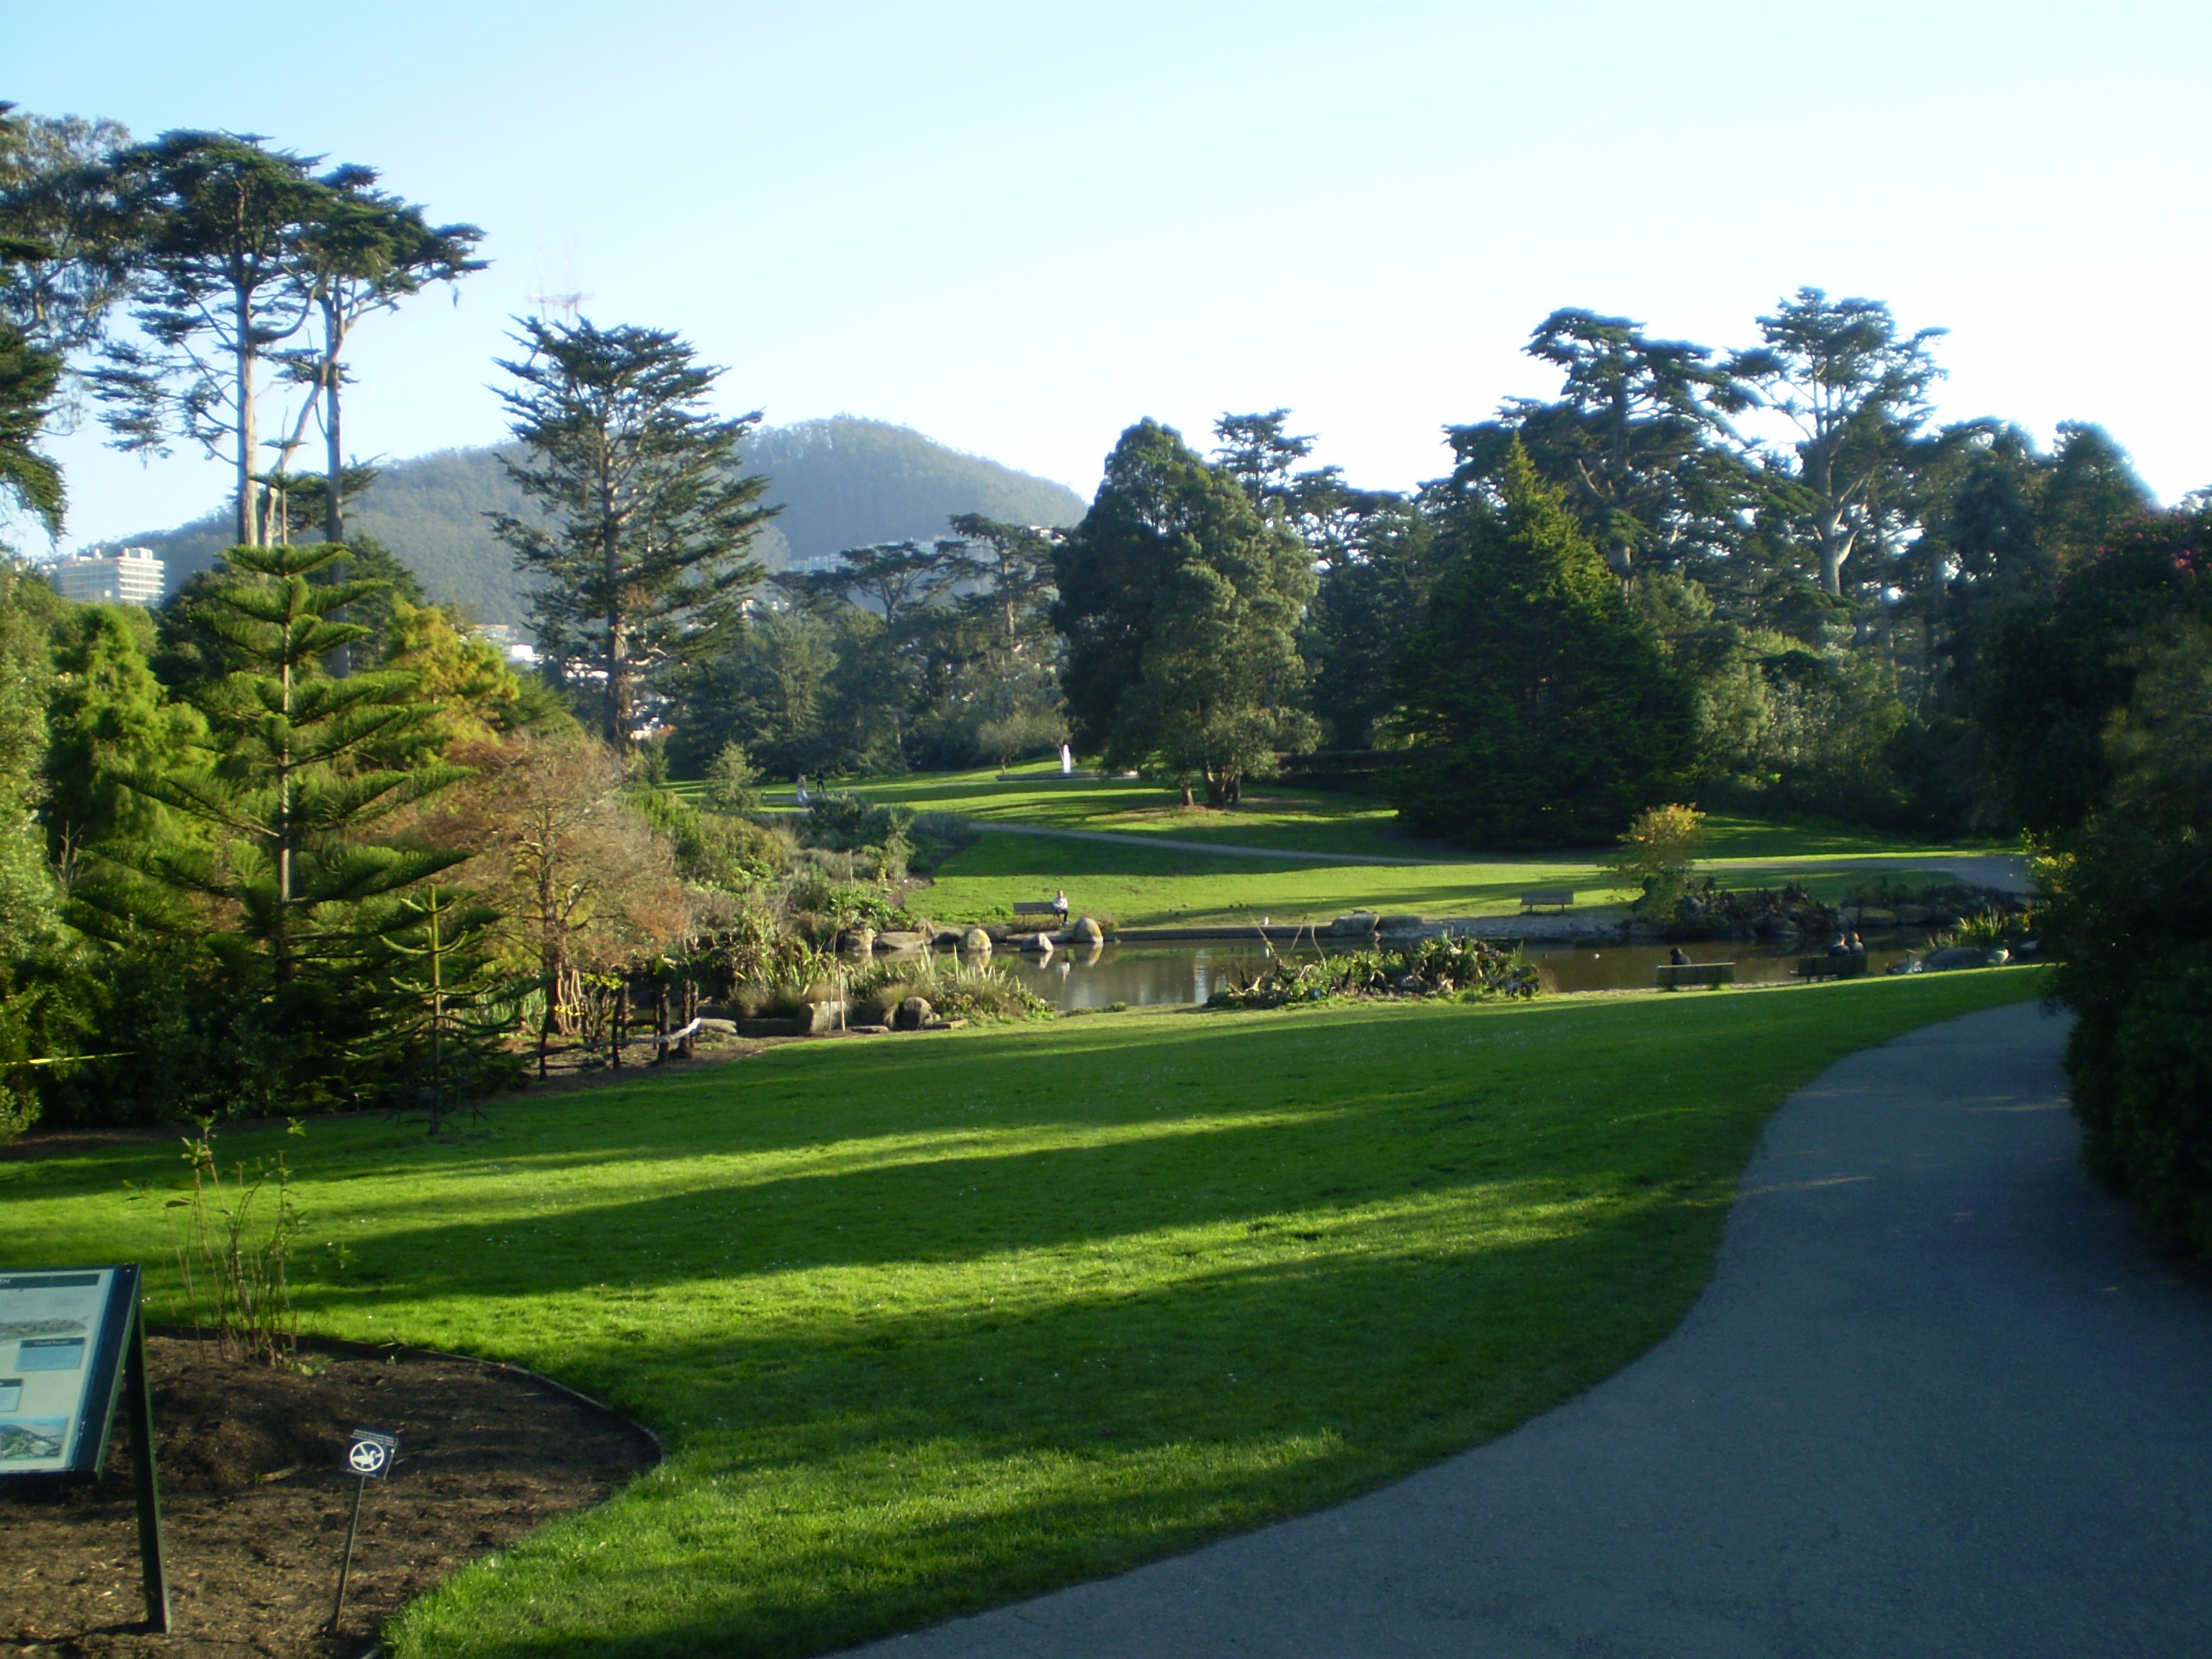 Golden Gate Park Closed To Cars